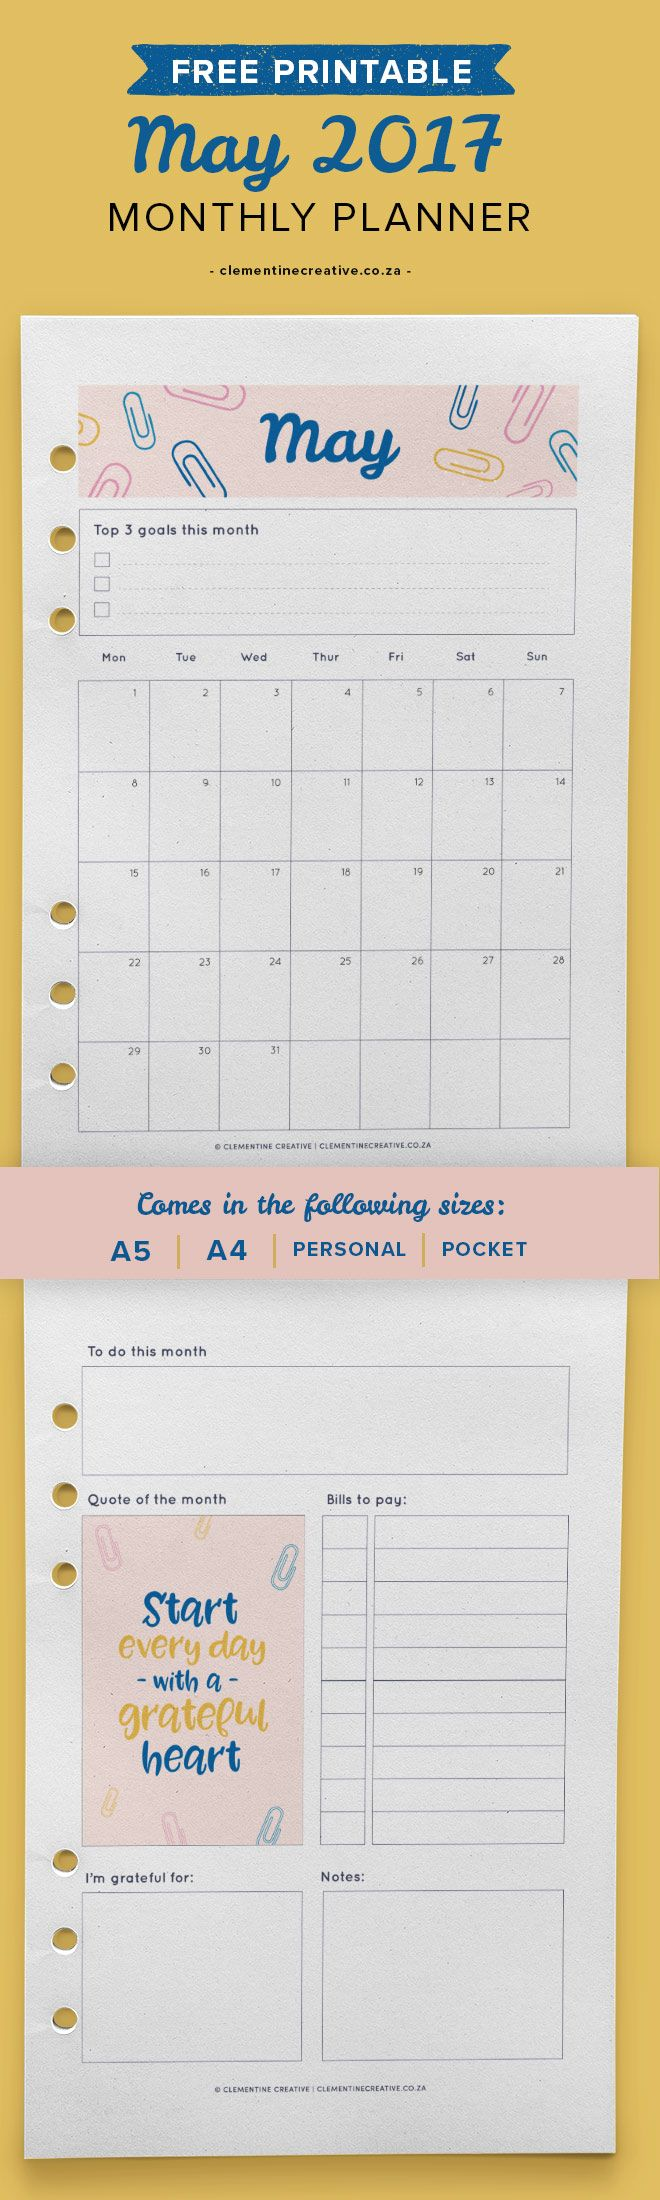 May Calendar Ideas : Best ideas about monthly planner printable on